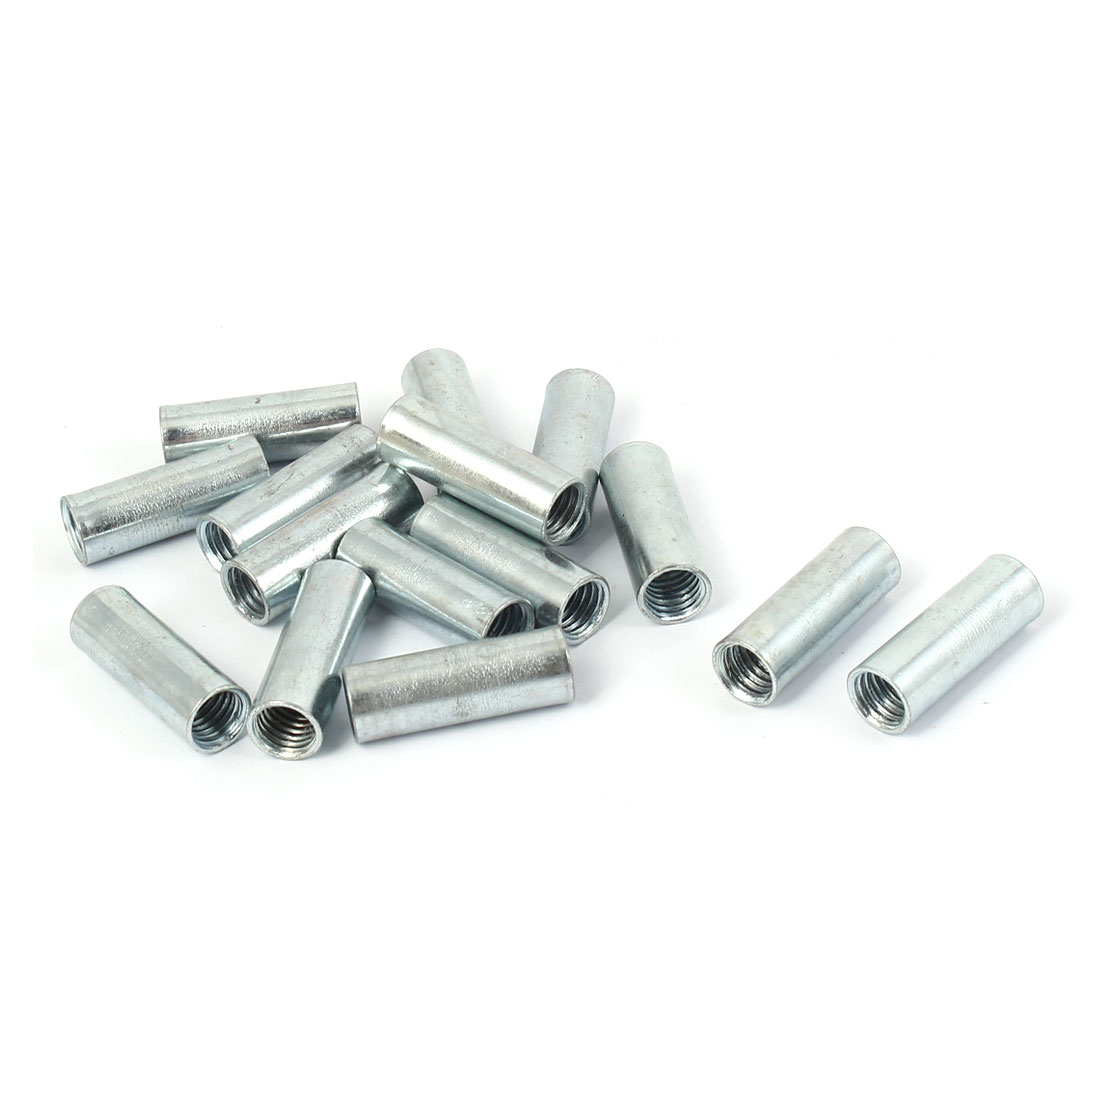 M10 Threaded Rod Bar Stud Round Coupling Connector Nuts Silver Tone 15 Pcs